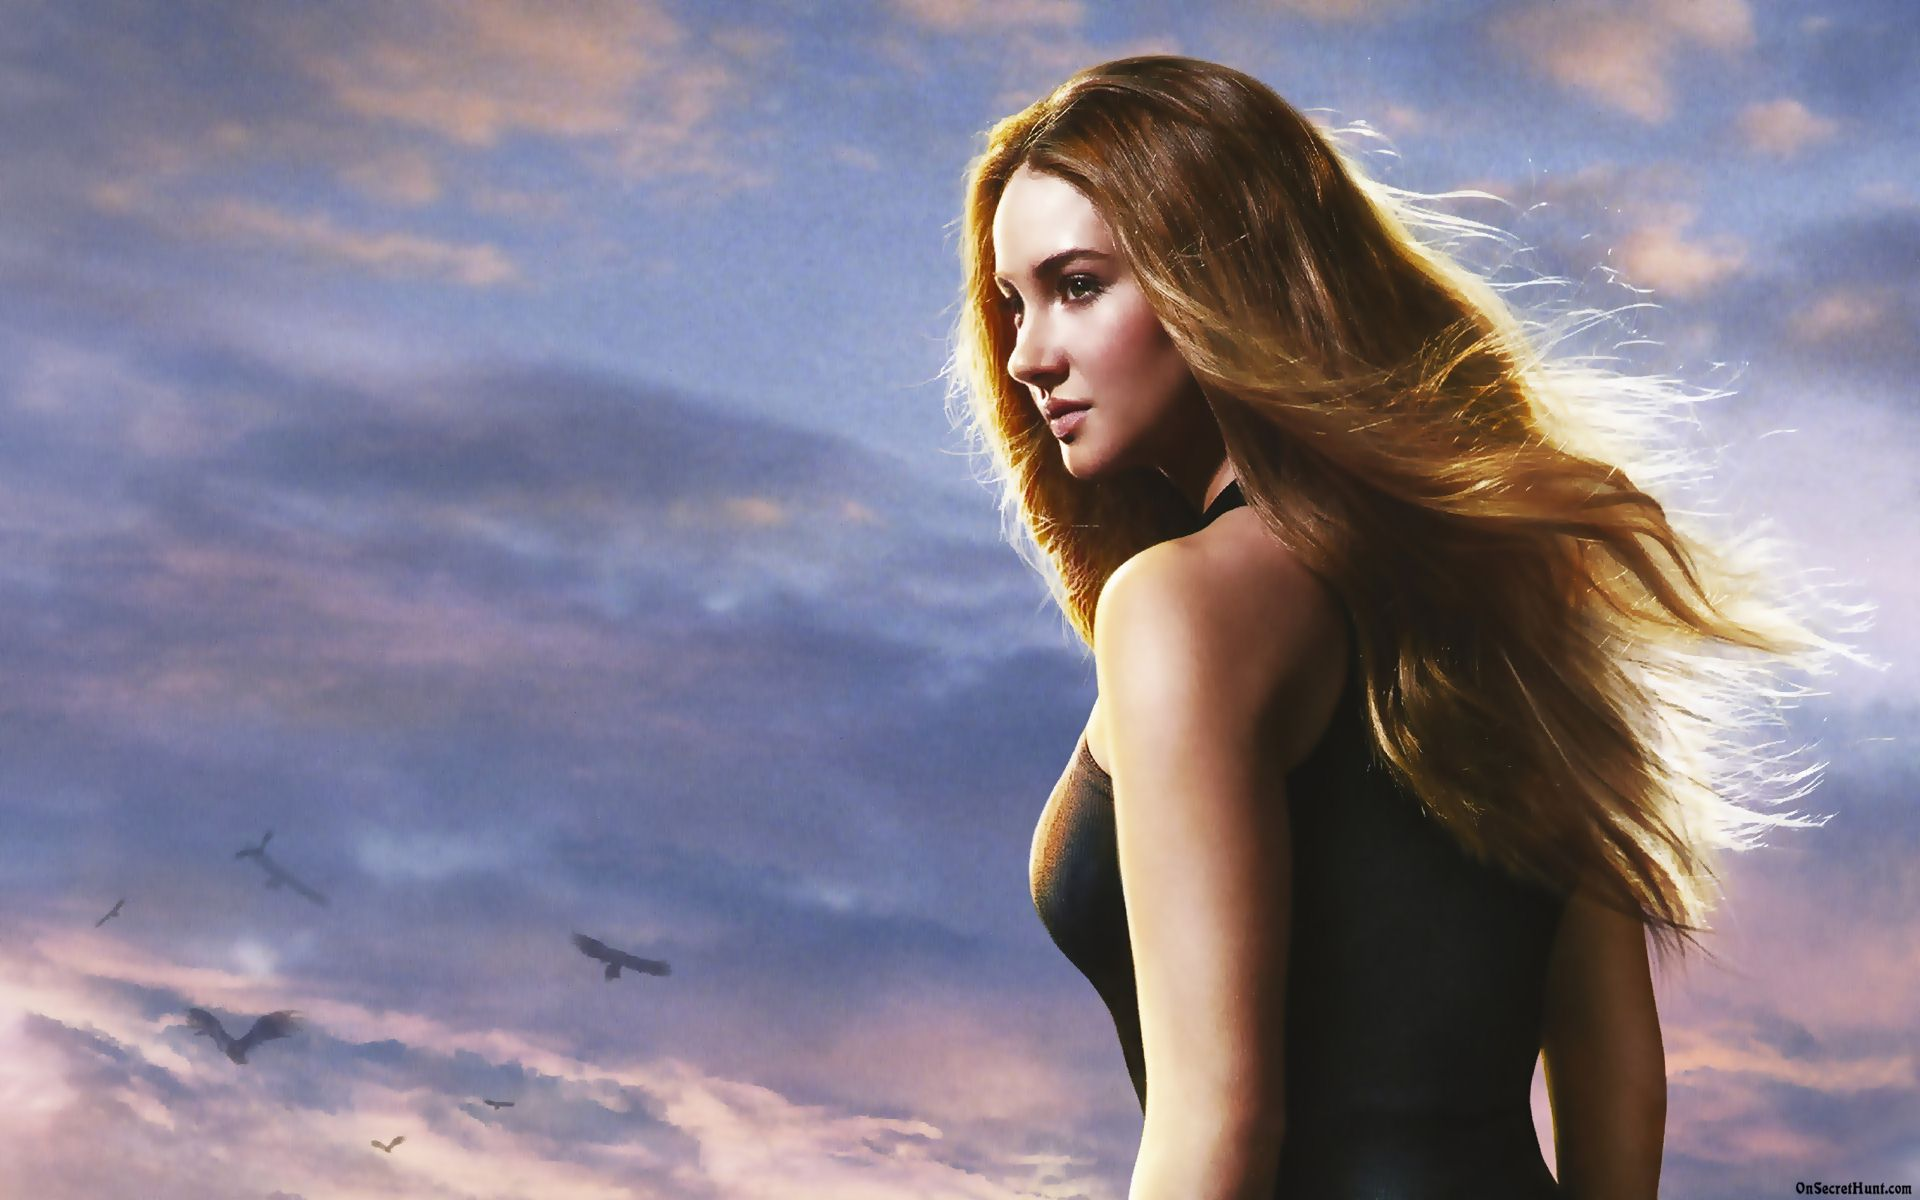 Shailene Woodley Divergent HD Wallpaper Background Images 1920x1200